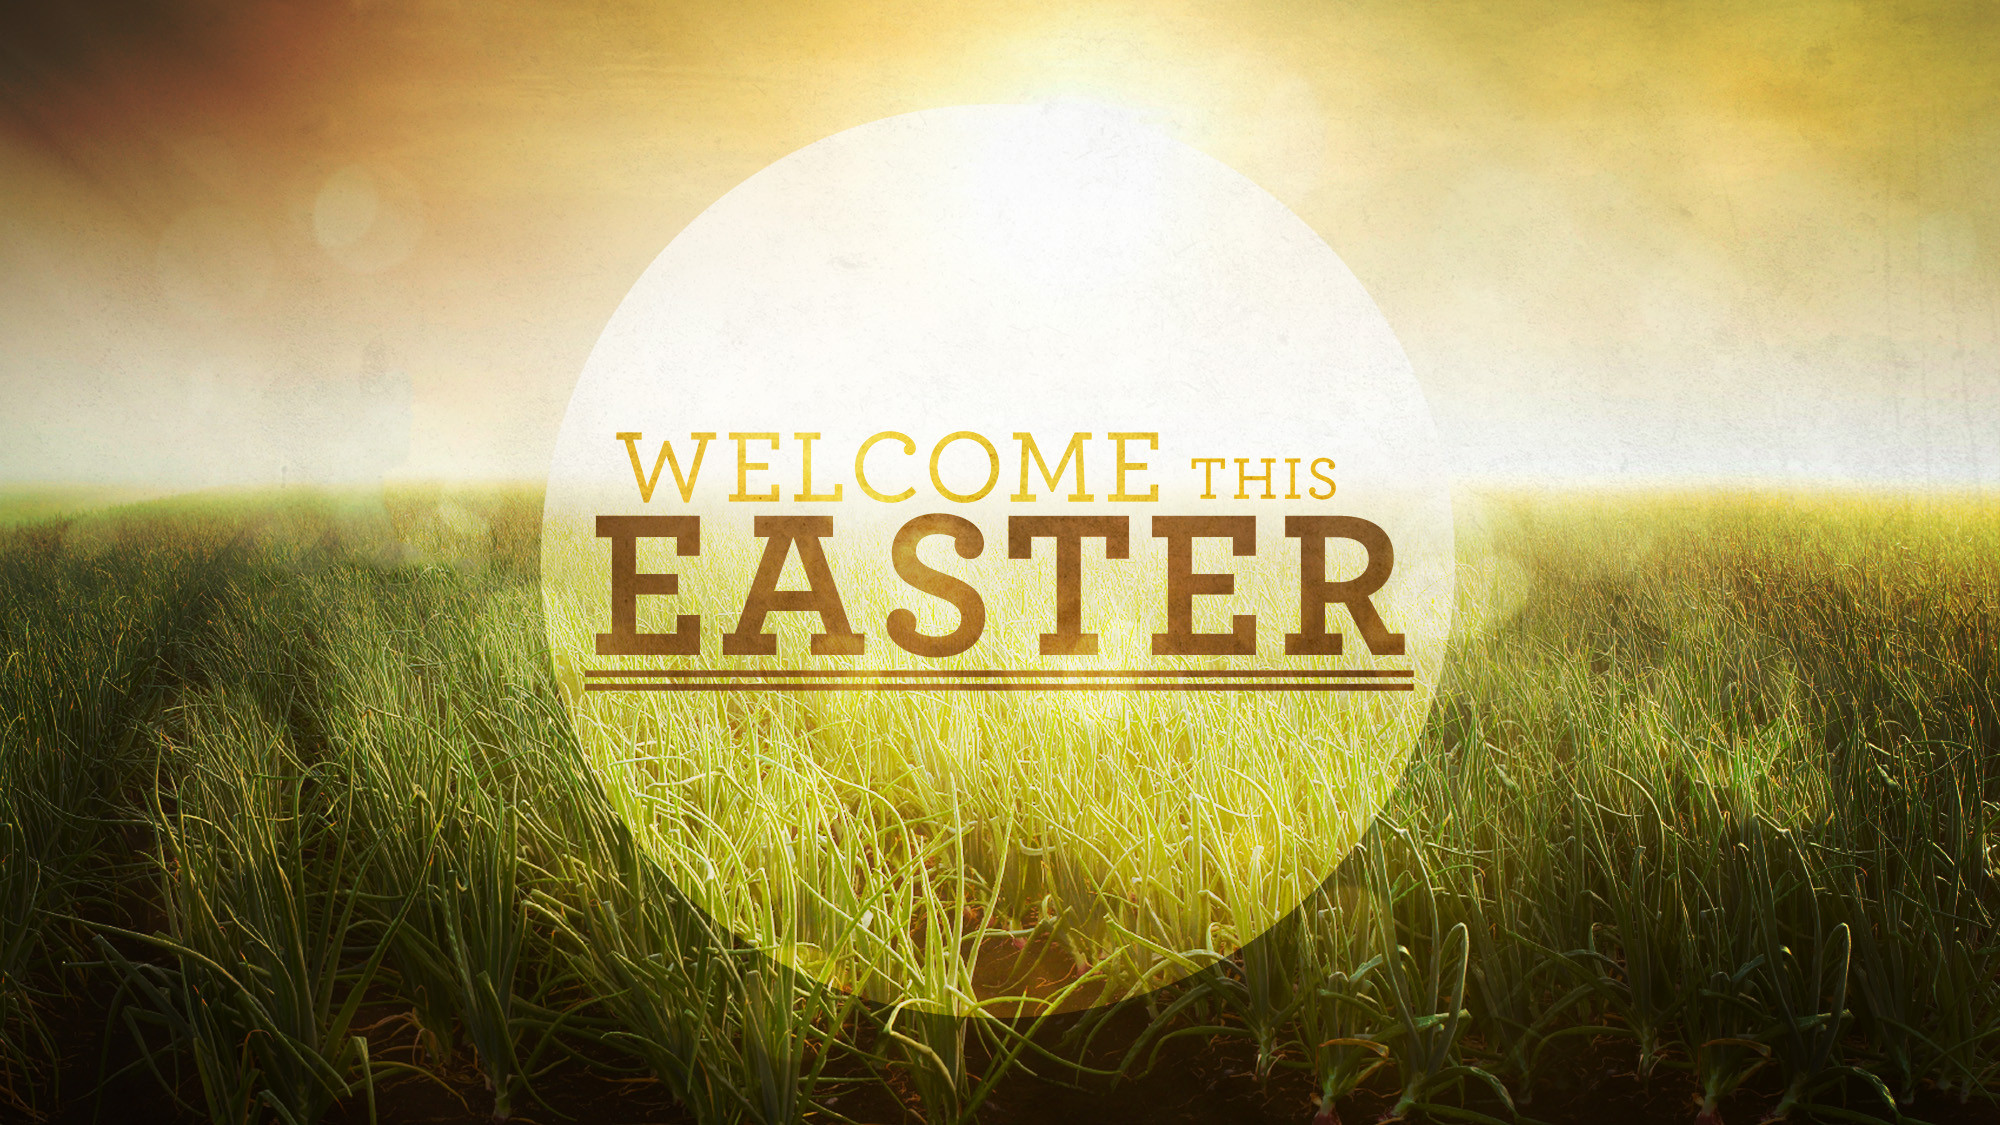 http://malabarbaptist.com/wp-content/uploads/2013/03/Welcome-This-Easter_wide_t_nv.jpg